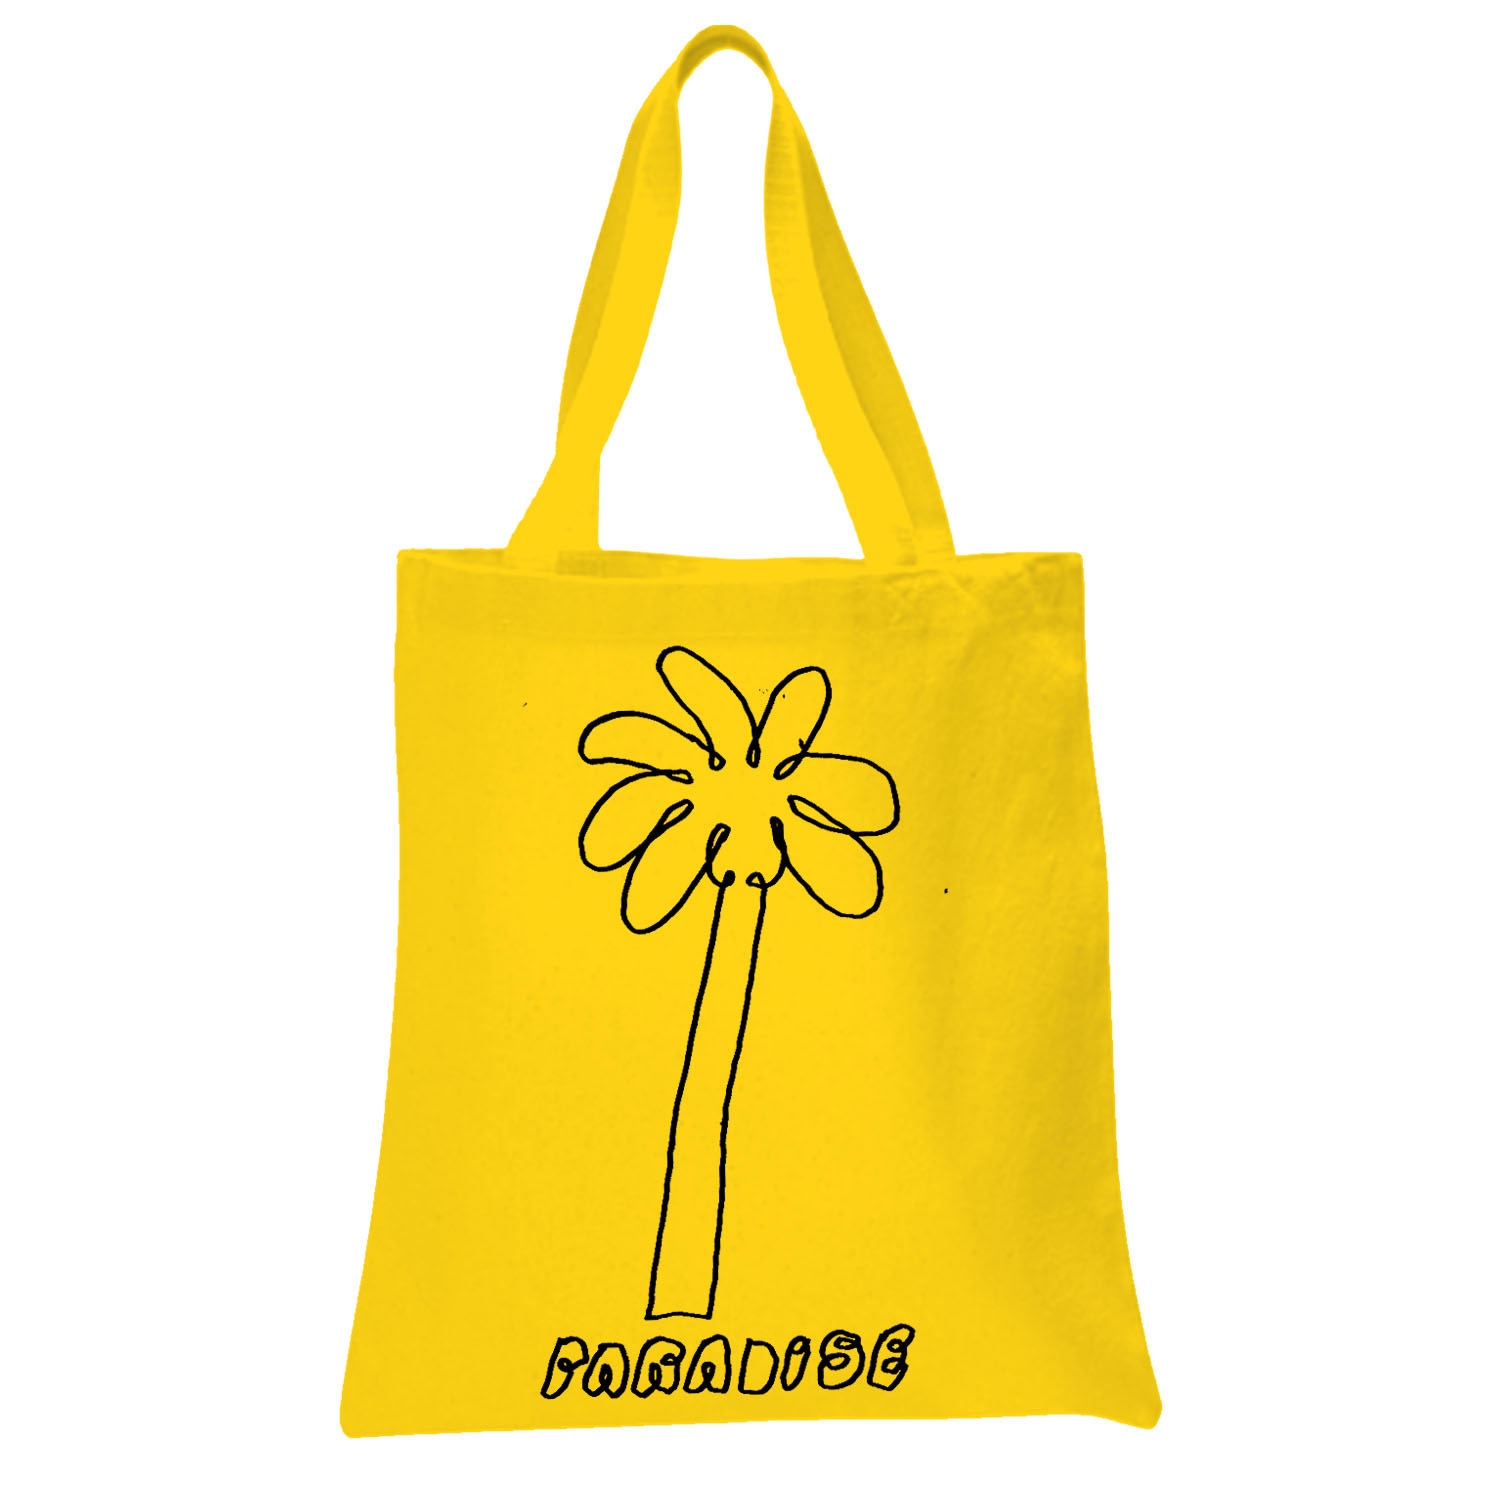 Paradise Tote by Kees Holterman